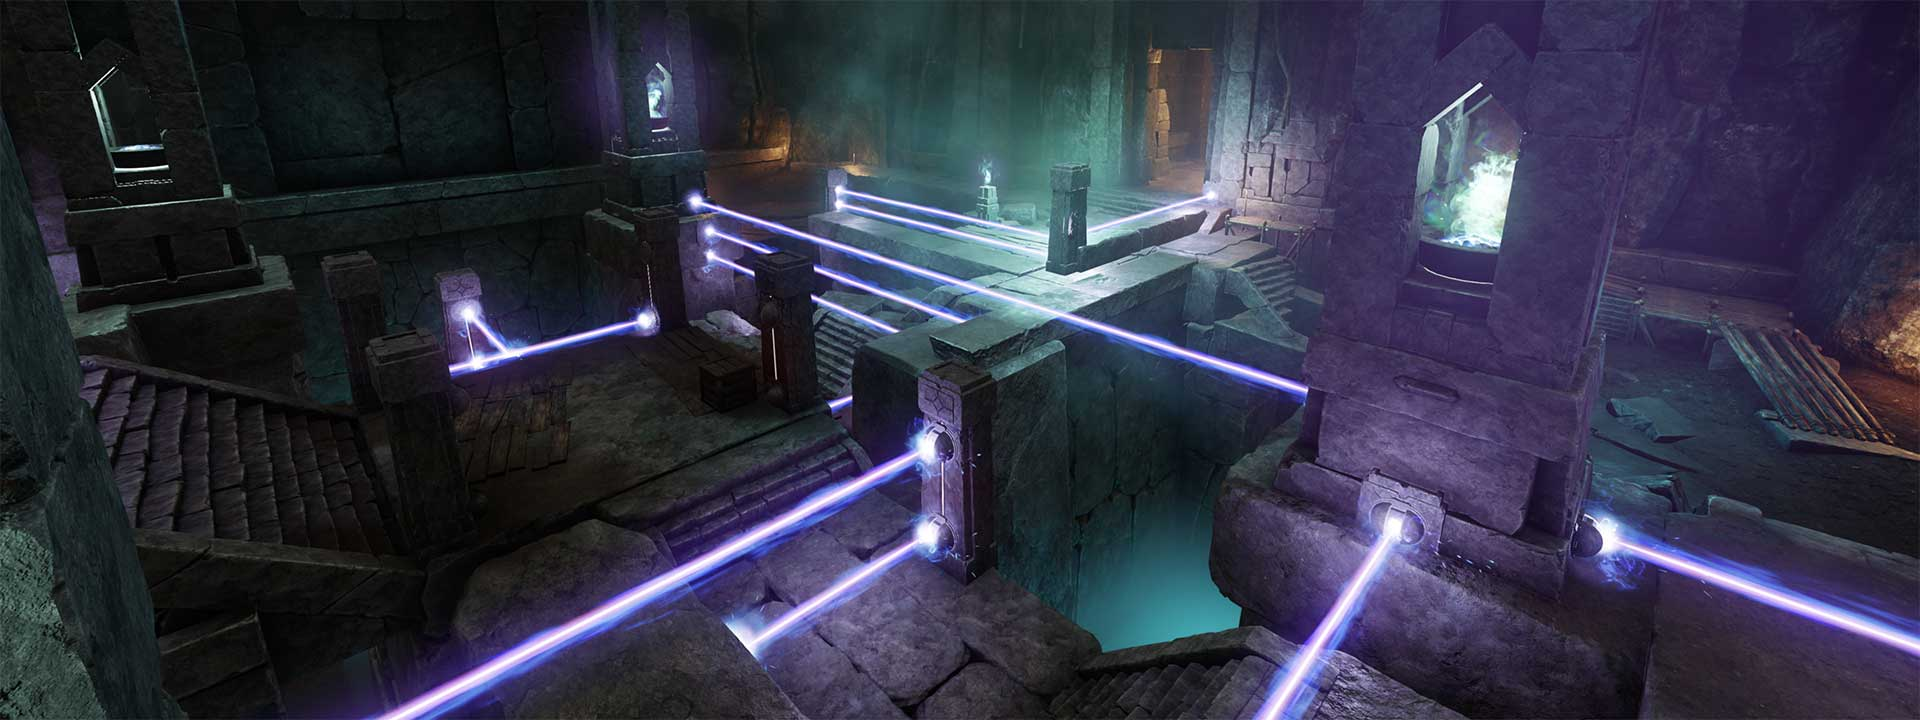 A puzzle room. Several stone towers have beams of light shooting out from one or more of their faces, creating a maze.